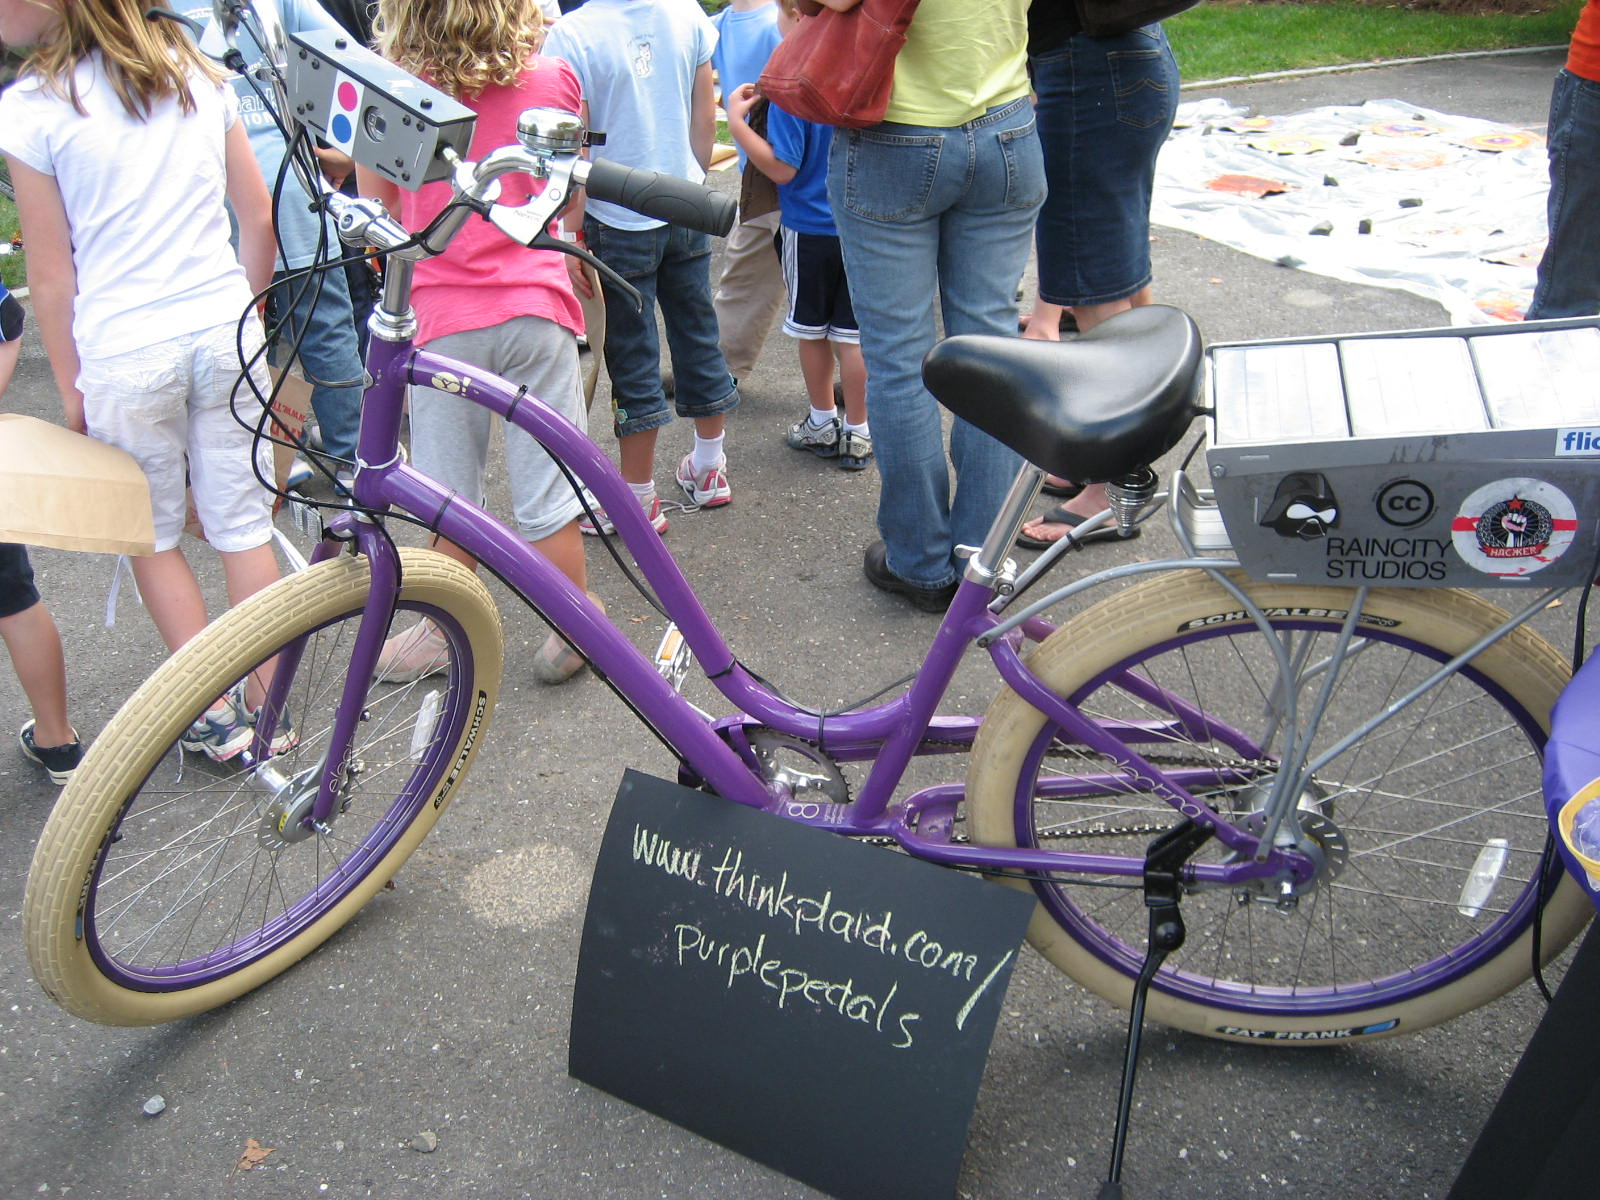 Purple Pedal project bike with solar powered camera (on handlebars)